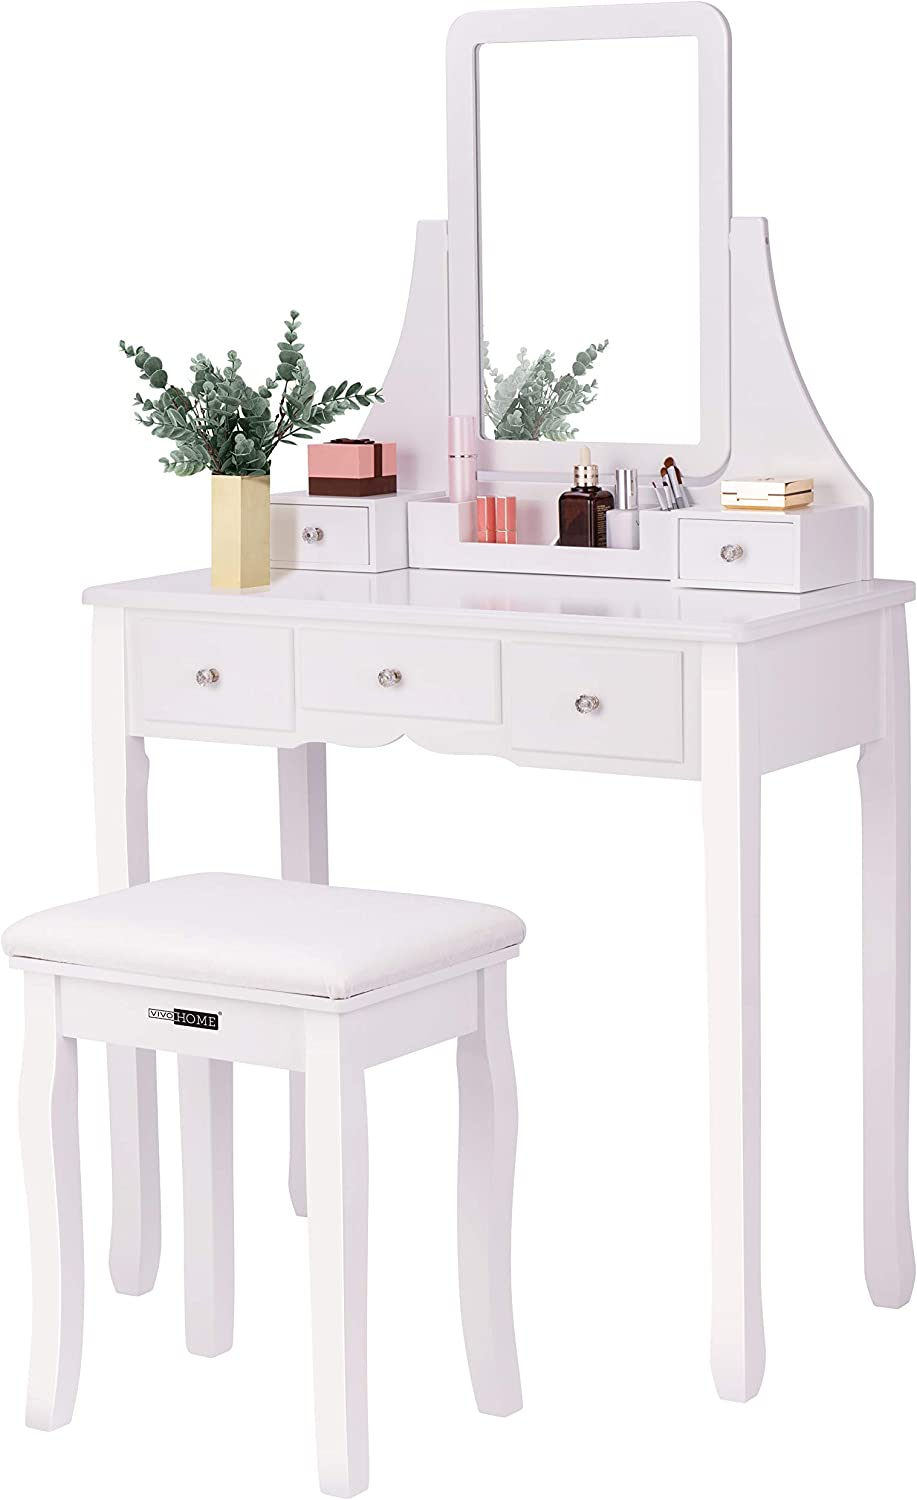 VIVOHOME Makeup Vanity Set with 5 Drawers and 1 Removable Organizer, Dressing Table with 360 Rotating Mirror and Cushioned Stool, White